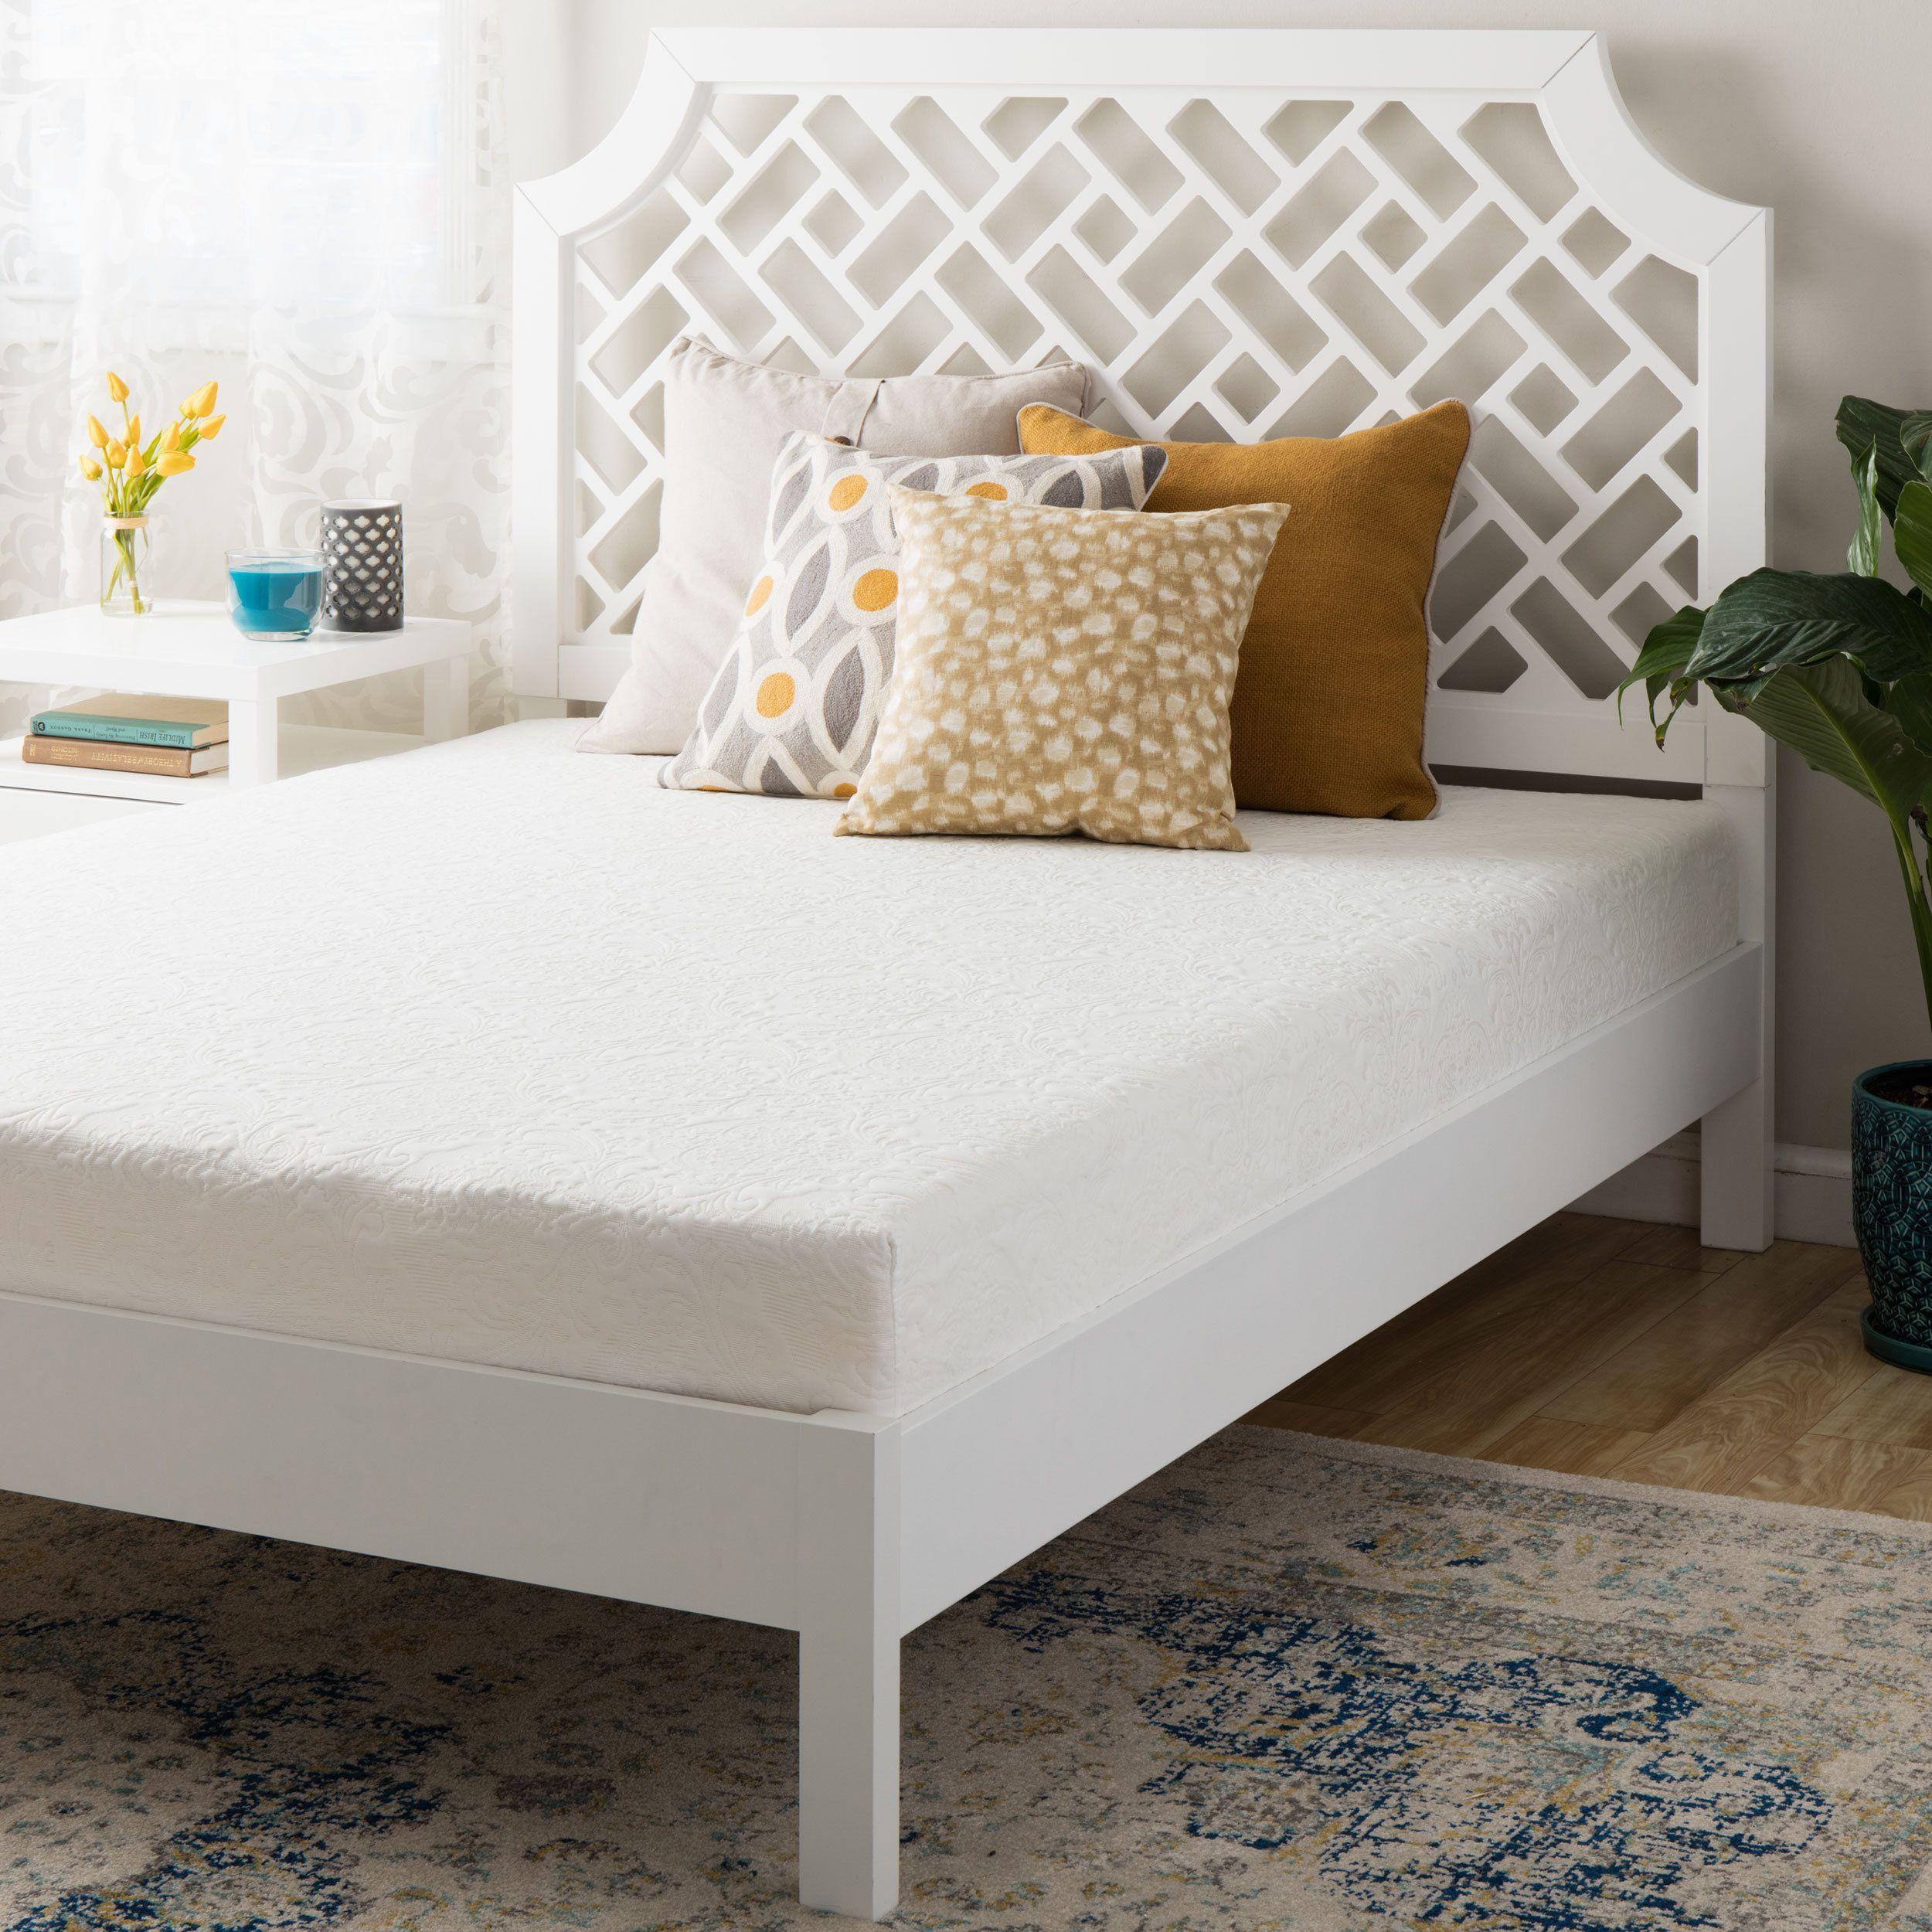 Double Layered 8 Inch Short Queen Size Memory Foam Mattress (size .